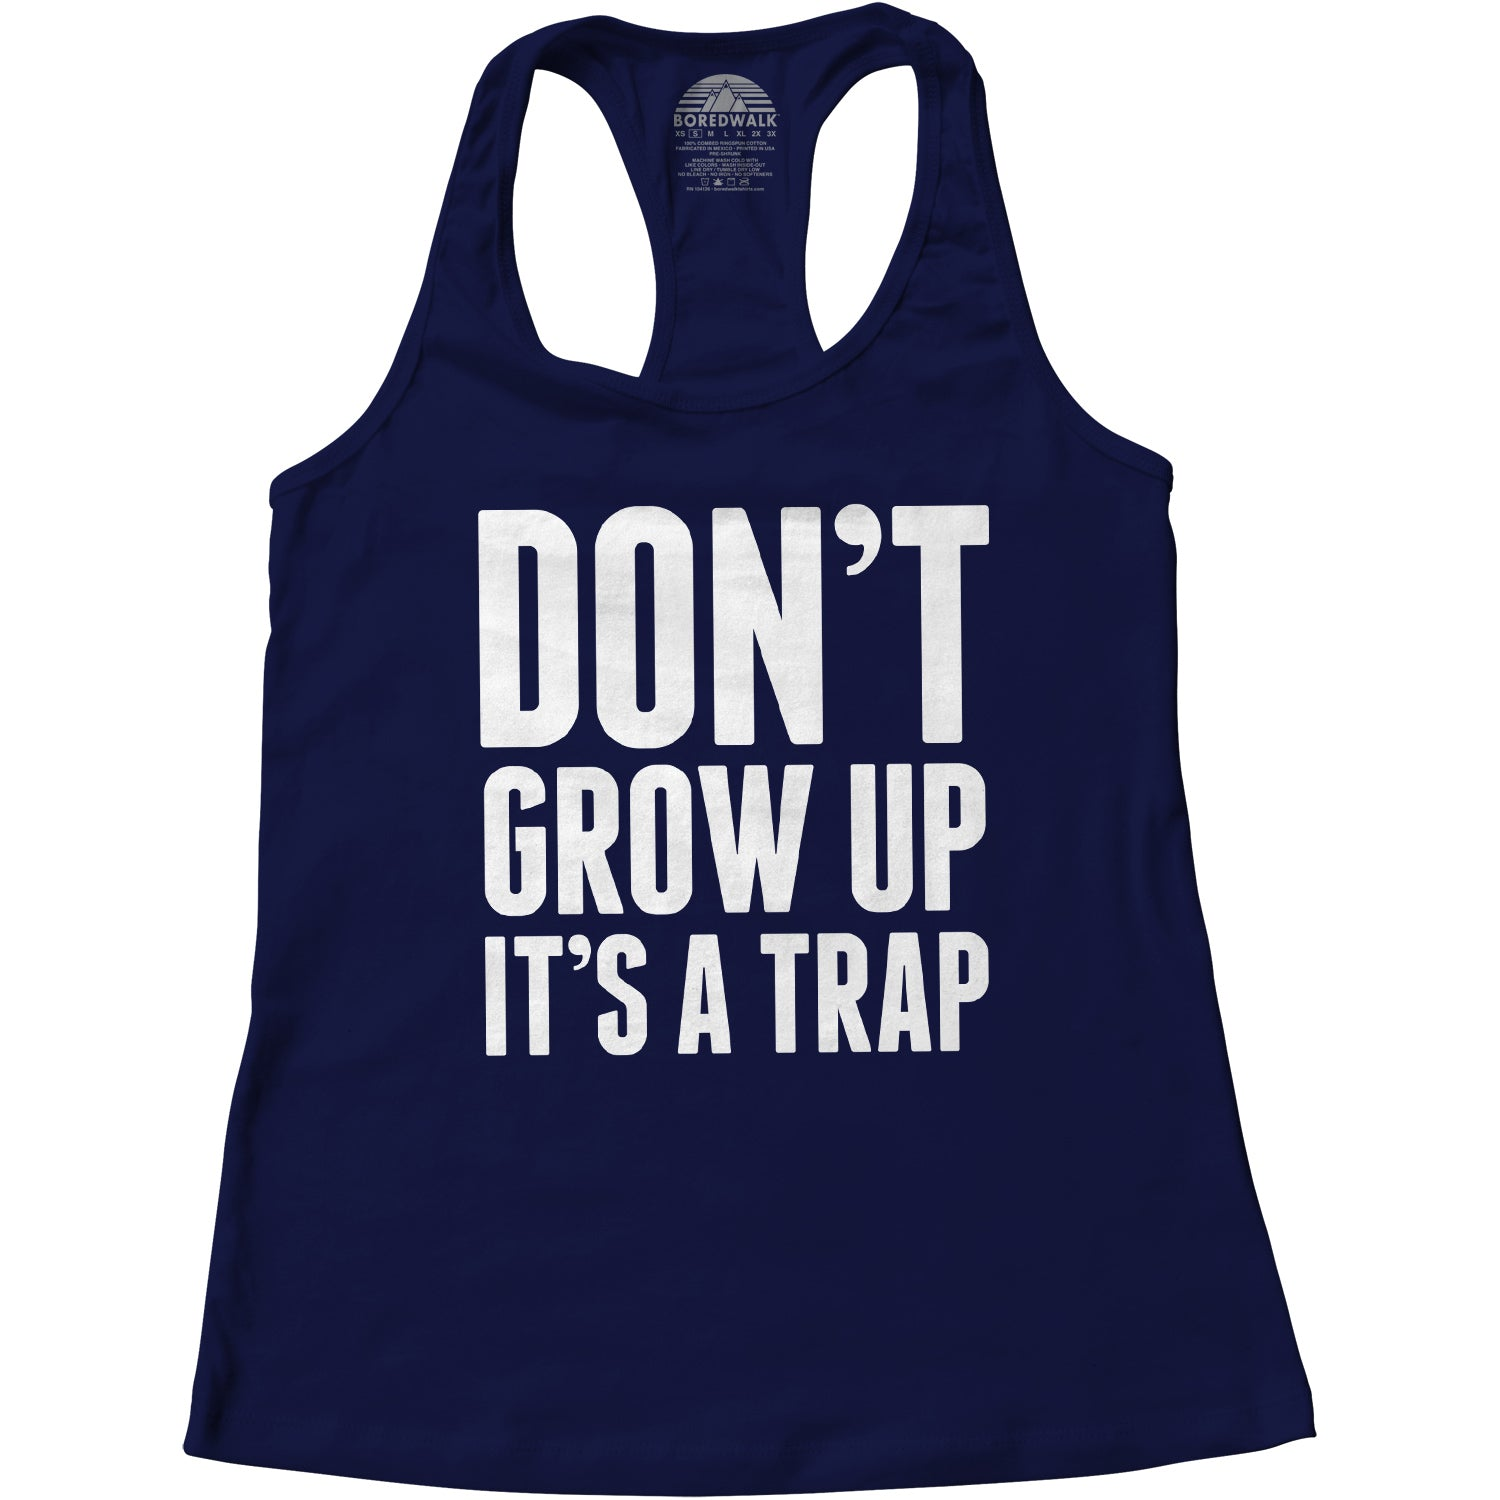 Women's Don't Grow Up It's A Trap Racerback Tank Top